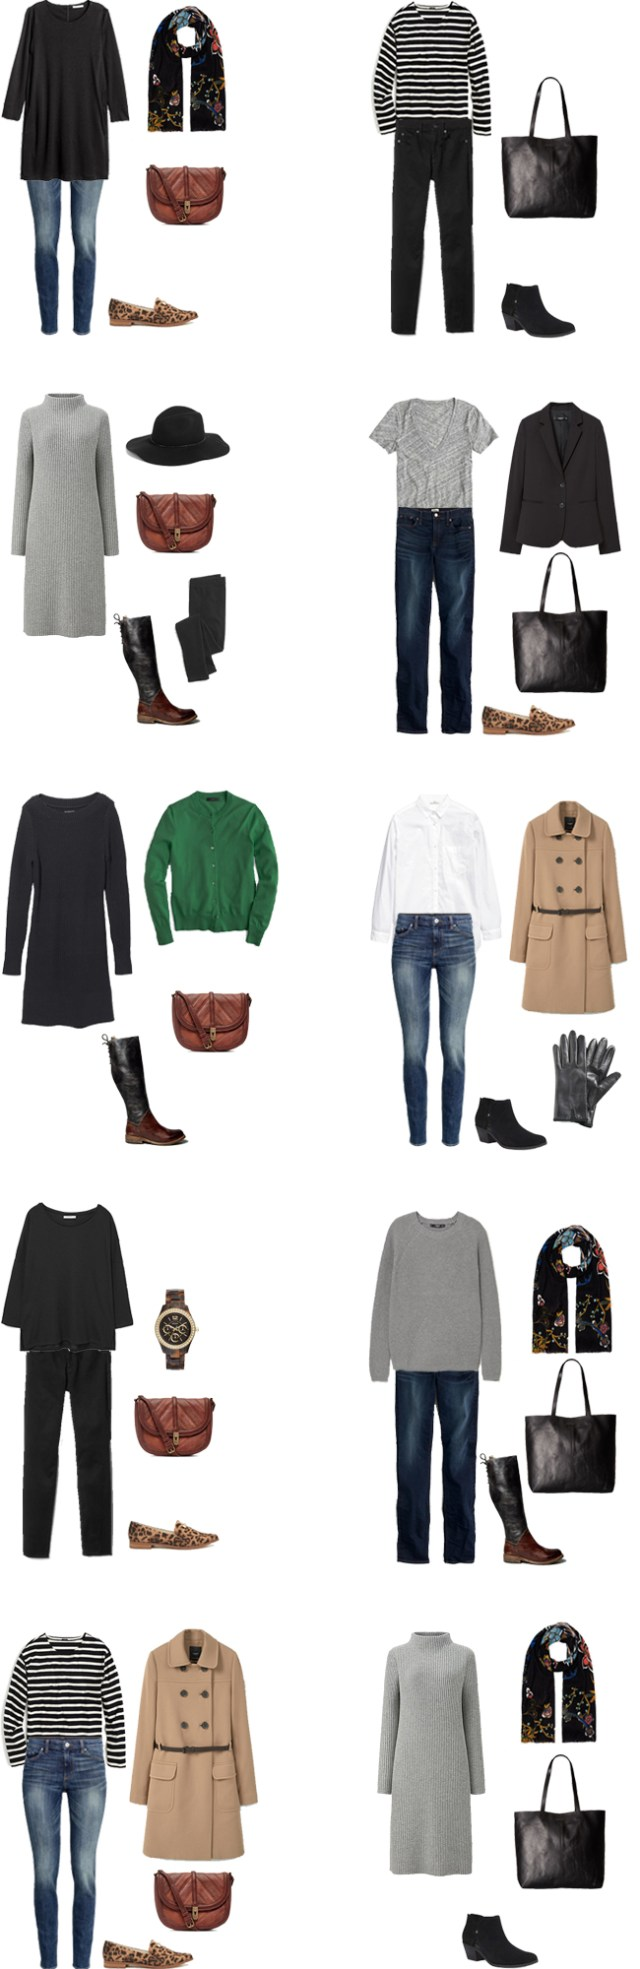 What to Wear in Germany and Austria Outfit Options 11-20 #travellight #packinglight #travel #traveltips